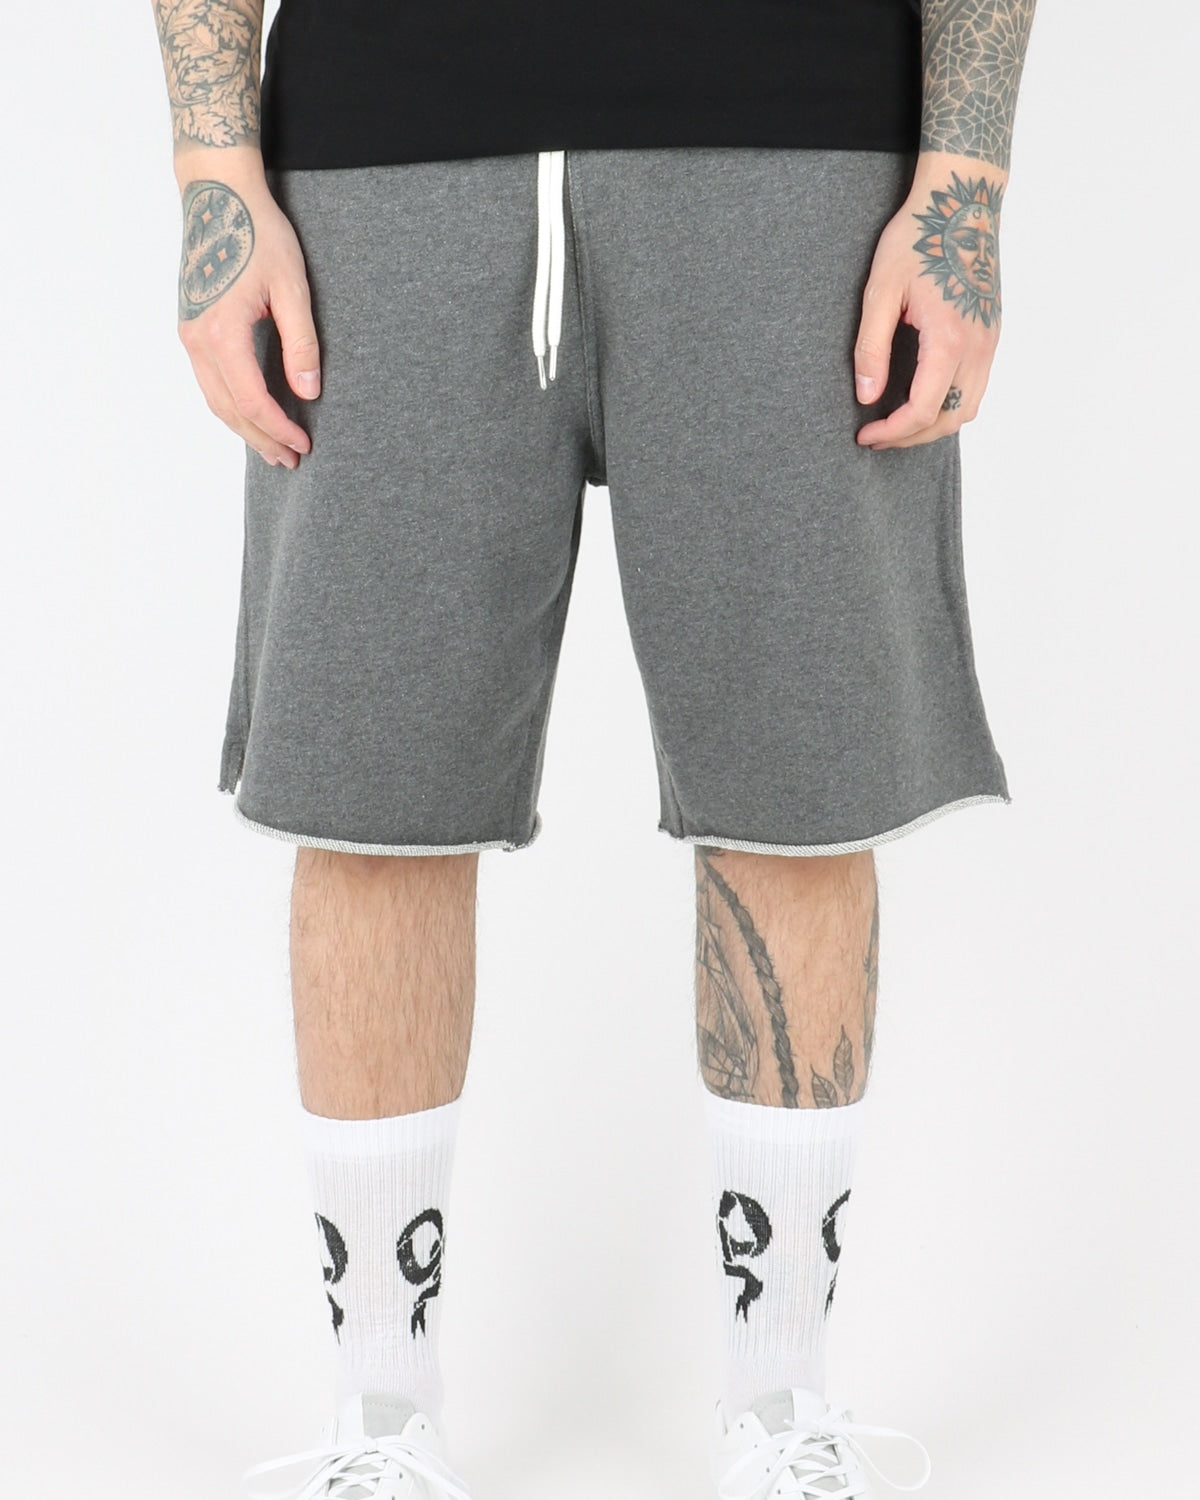 han kjobenhavn_sweat chino pants_grey_view_1_2